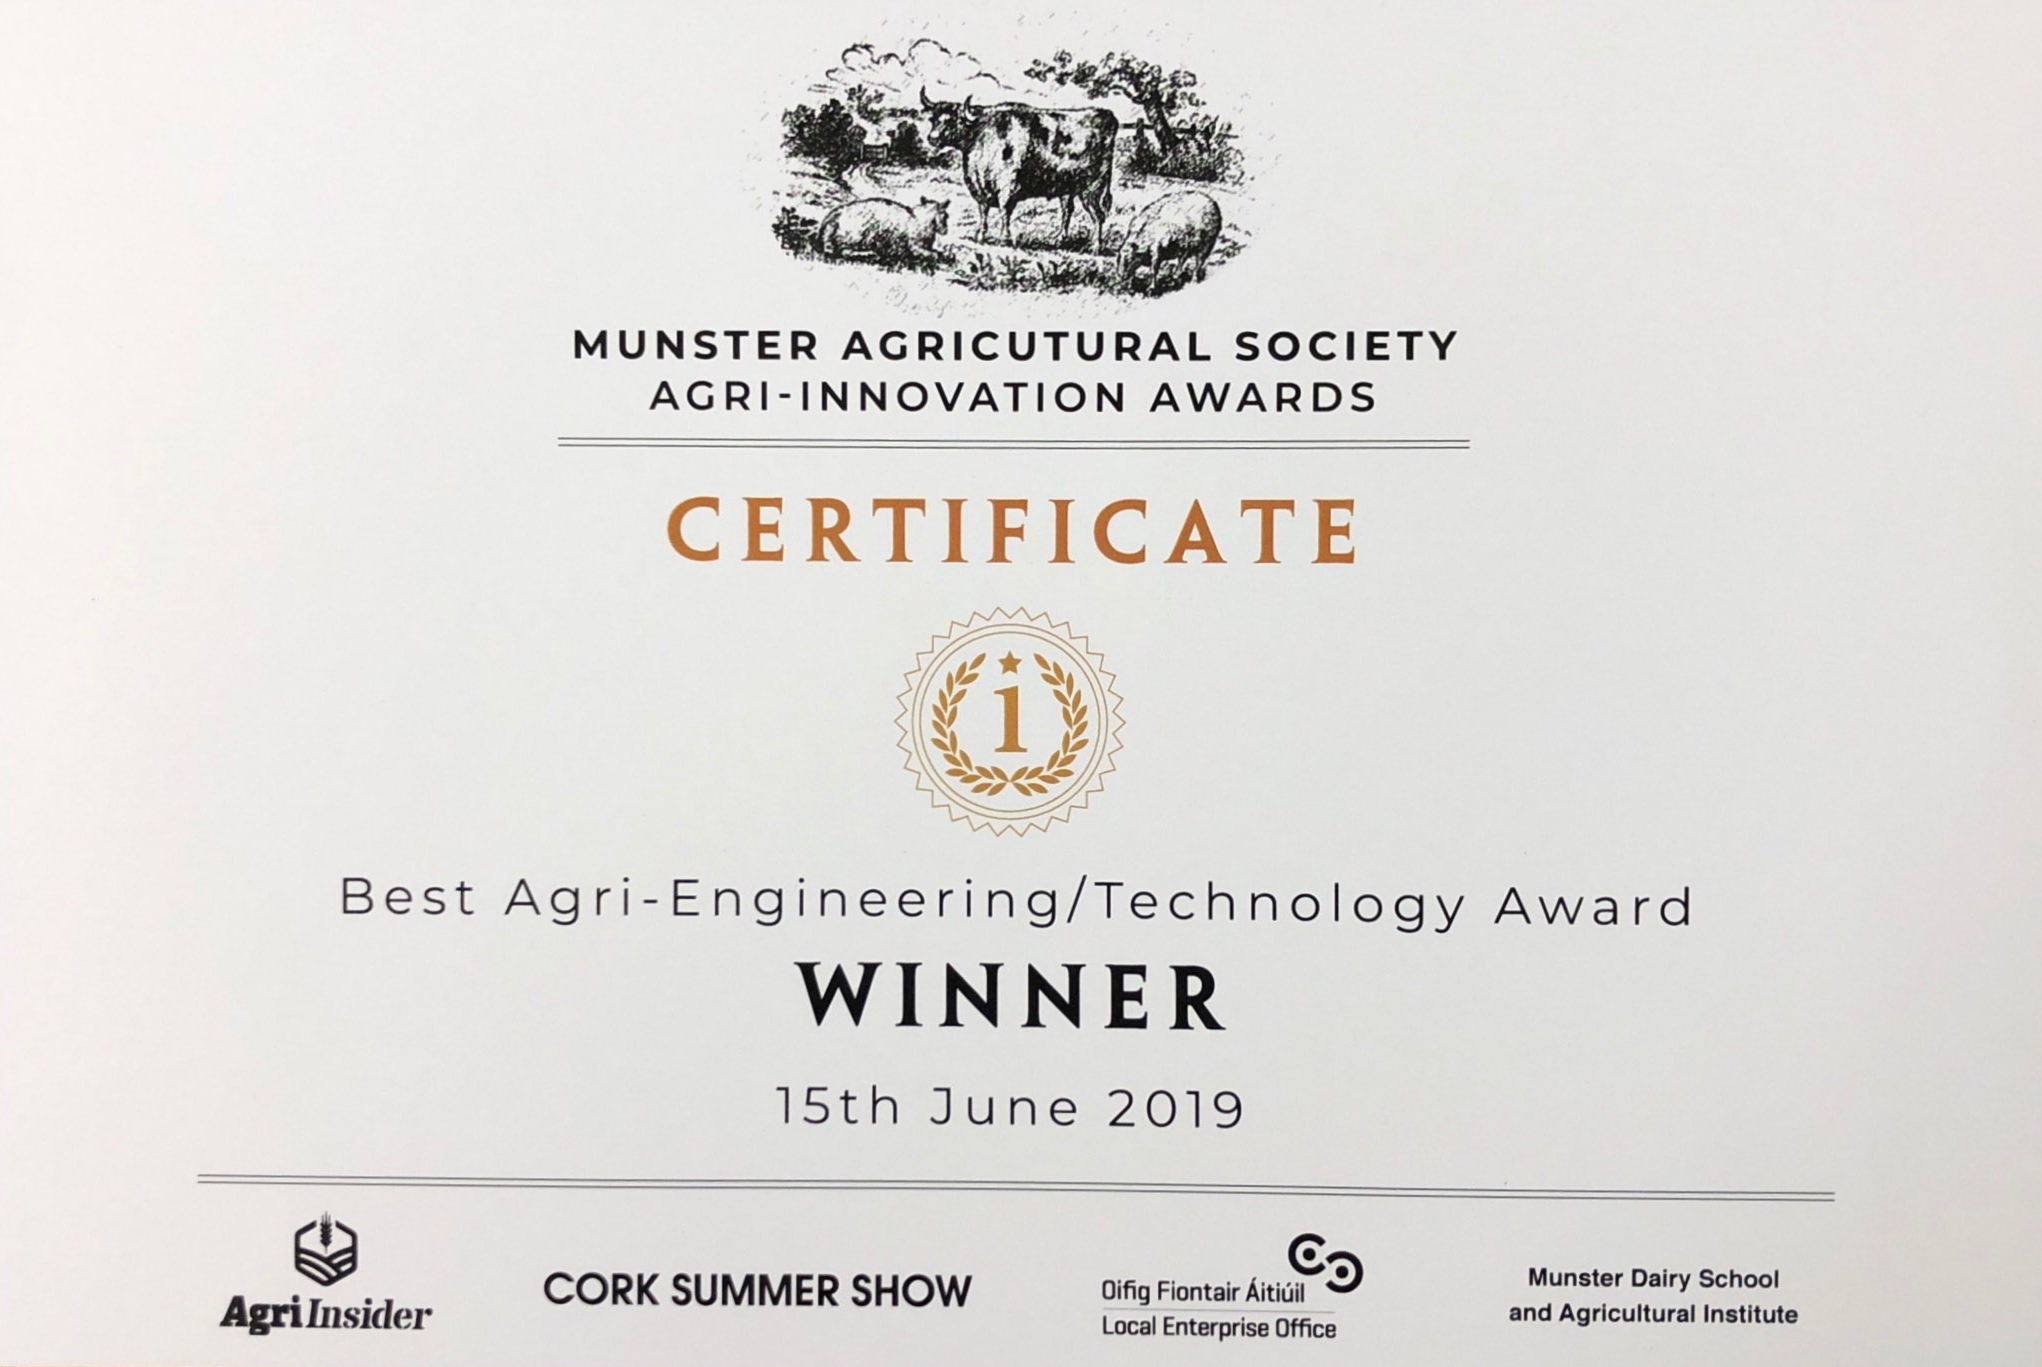 2019 Agri-Innovation Award